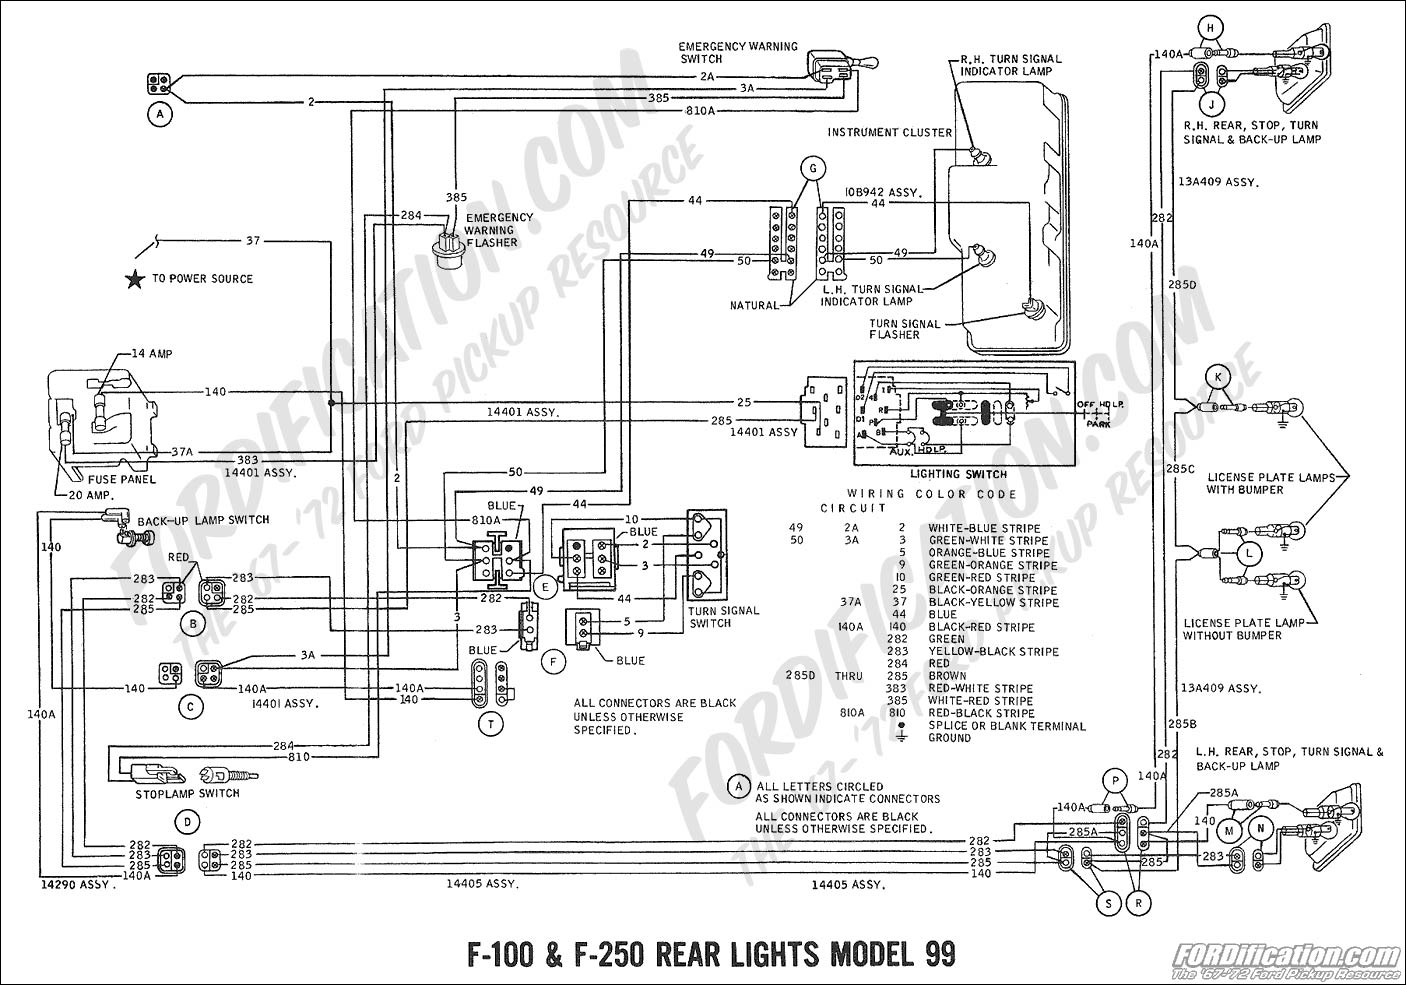 2004 f350 reverse light diagram